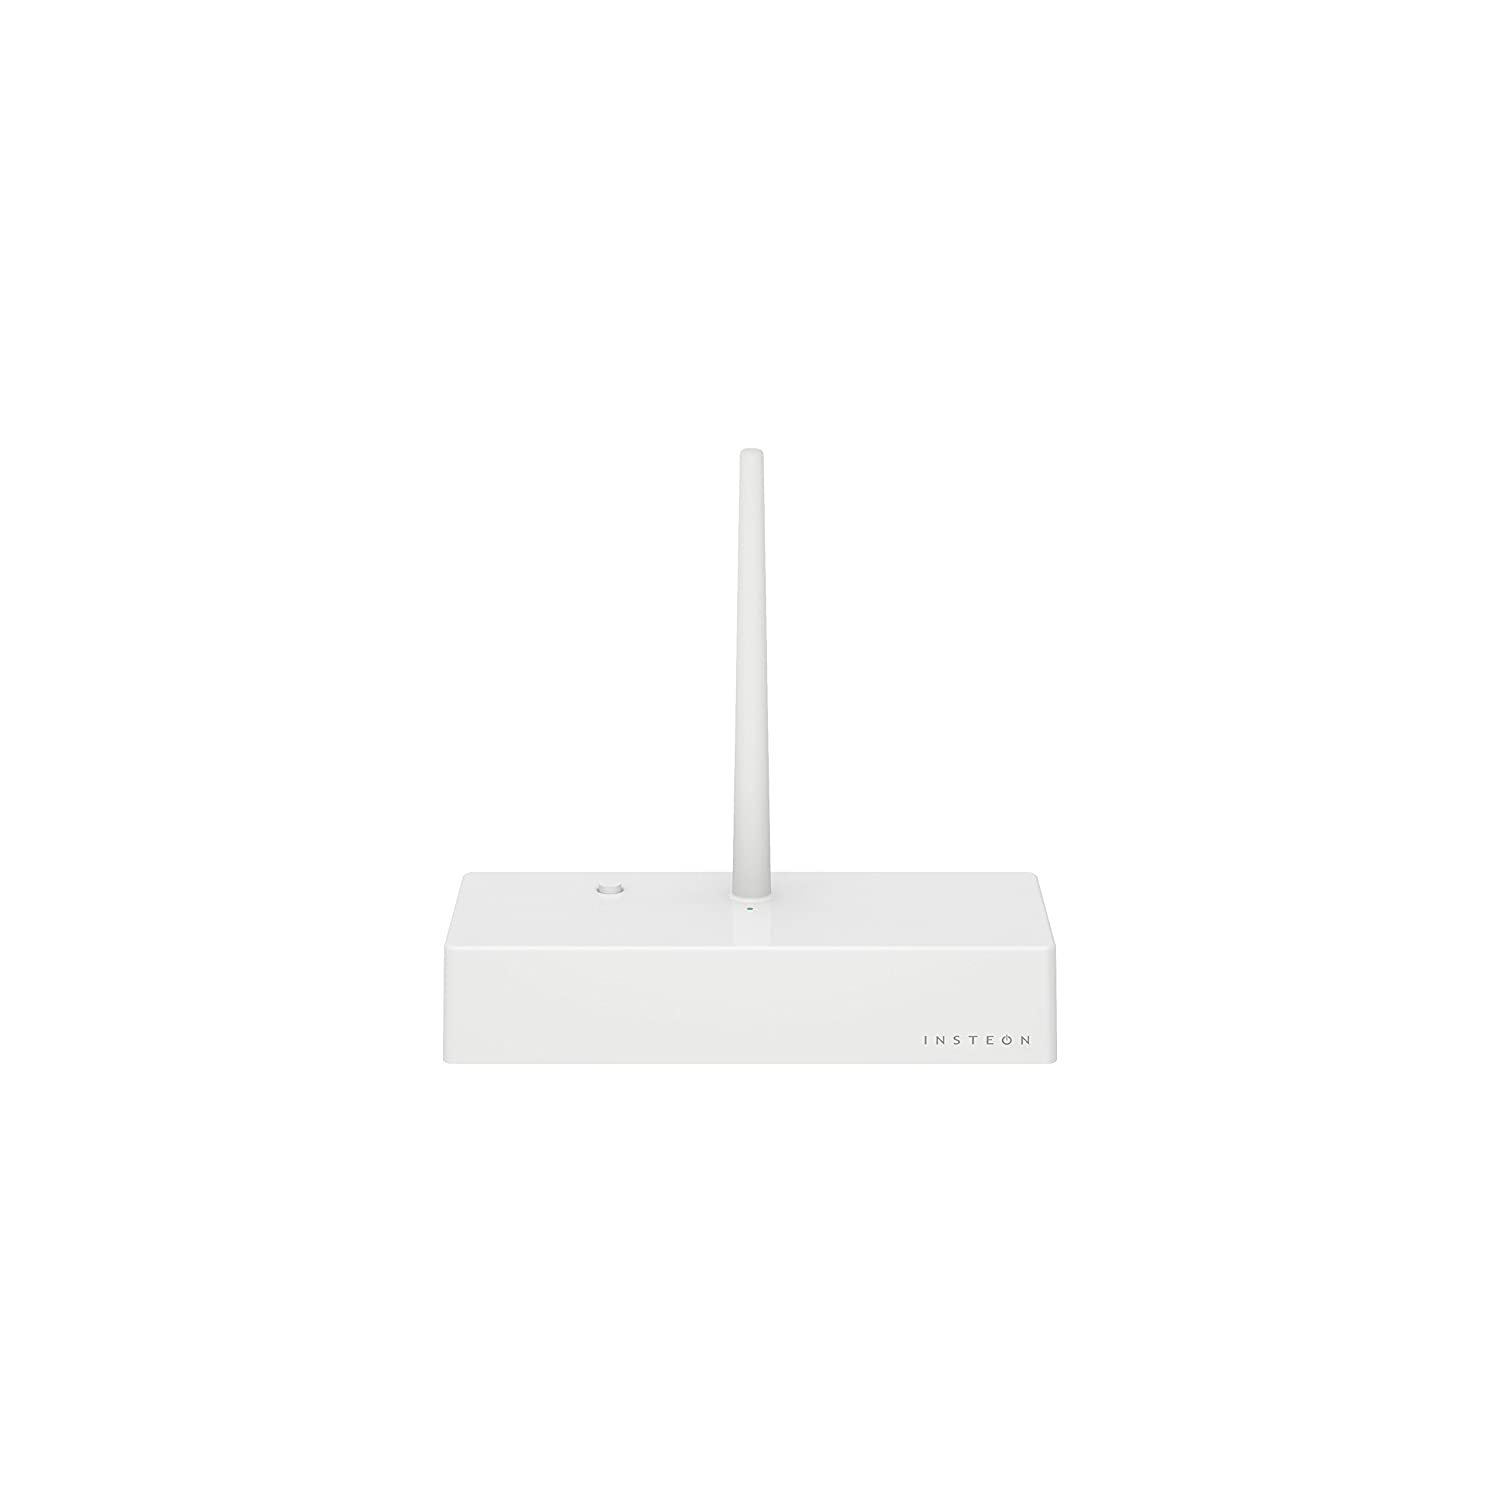 Insteon 2852-222 Wireless Water Leak Sensor, Use with Bridge for Smartphone Alerts, Uses Superior Mesh Wireless Technology for Unbeatable Reliability - Better than Wi-Fi, Zigbee and Z-Wave